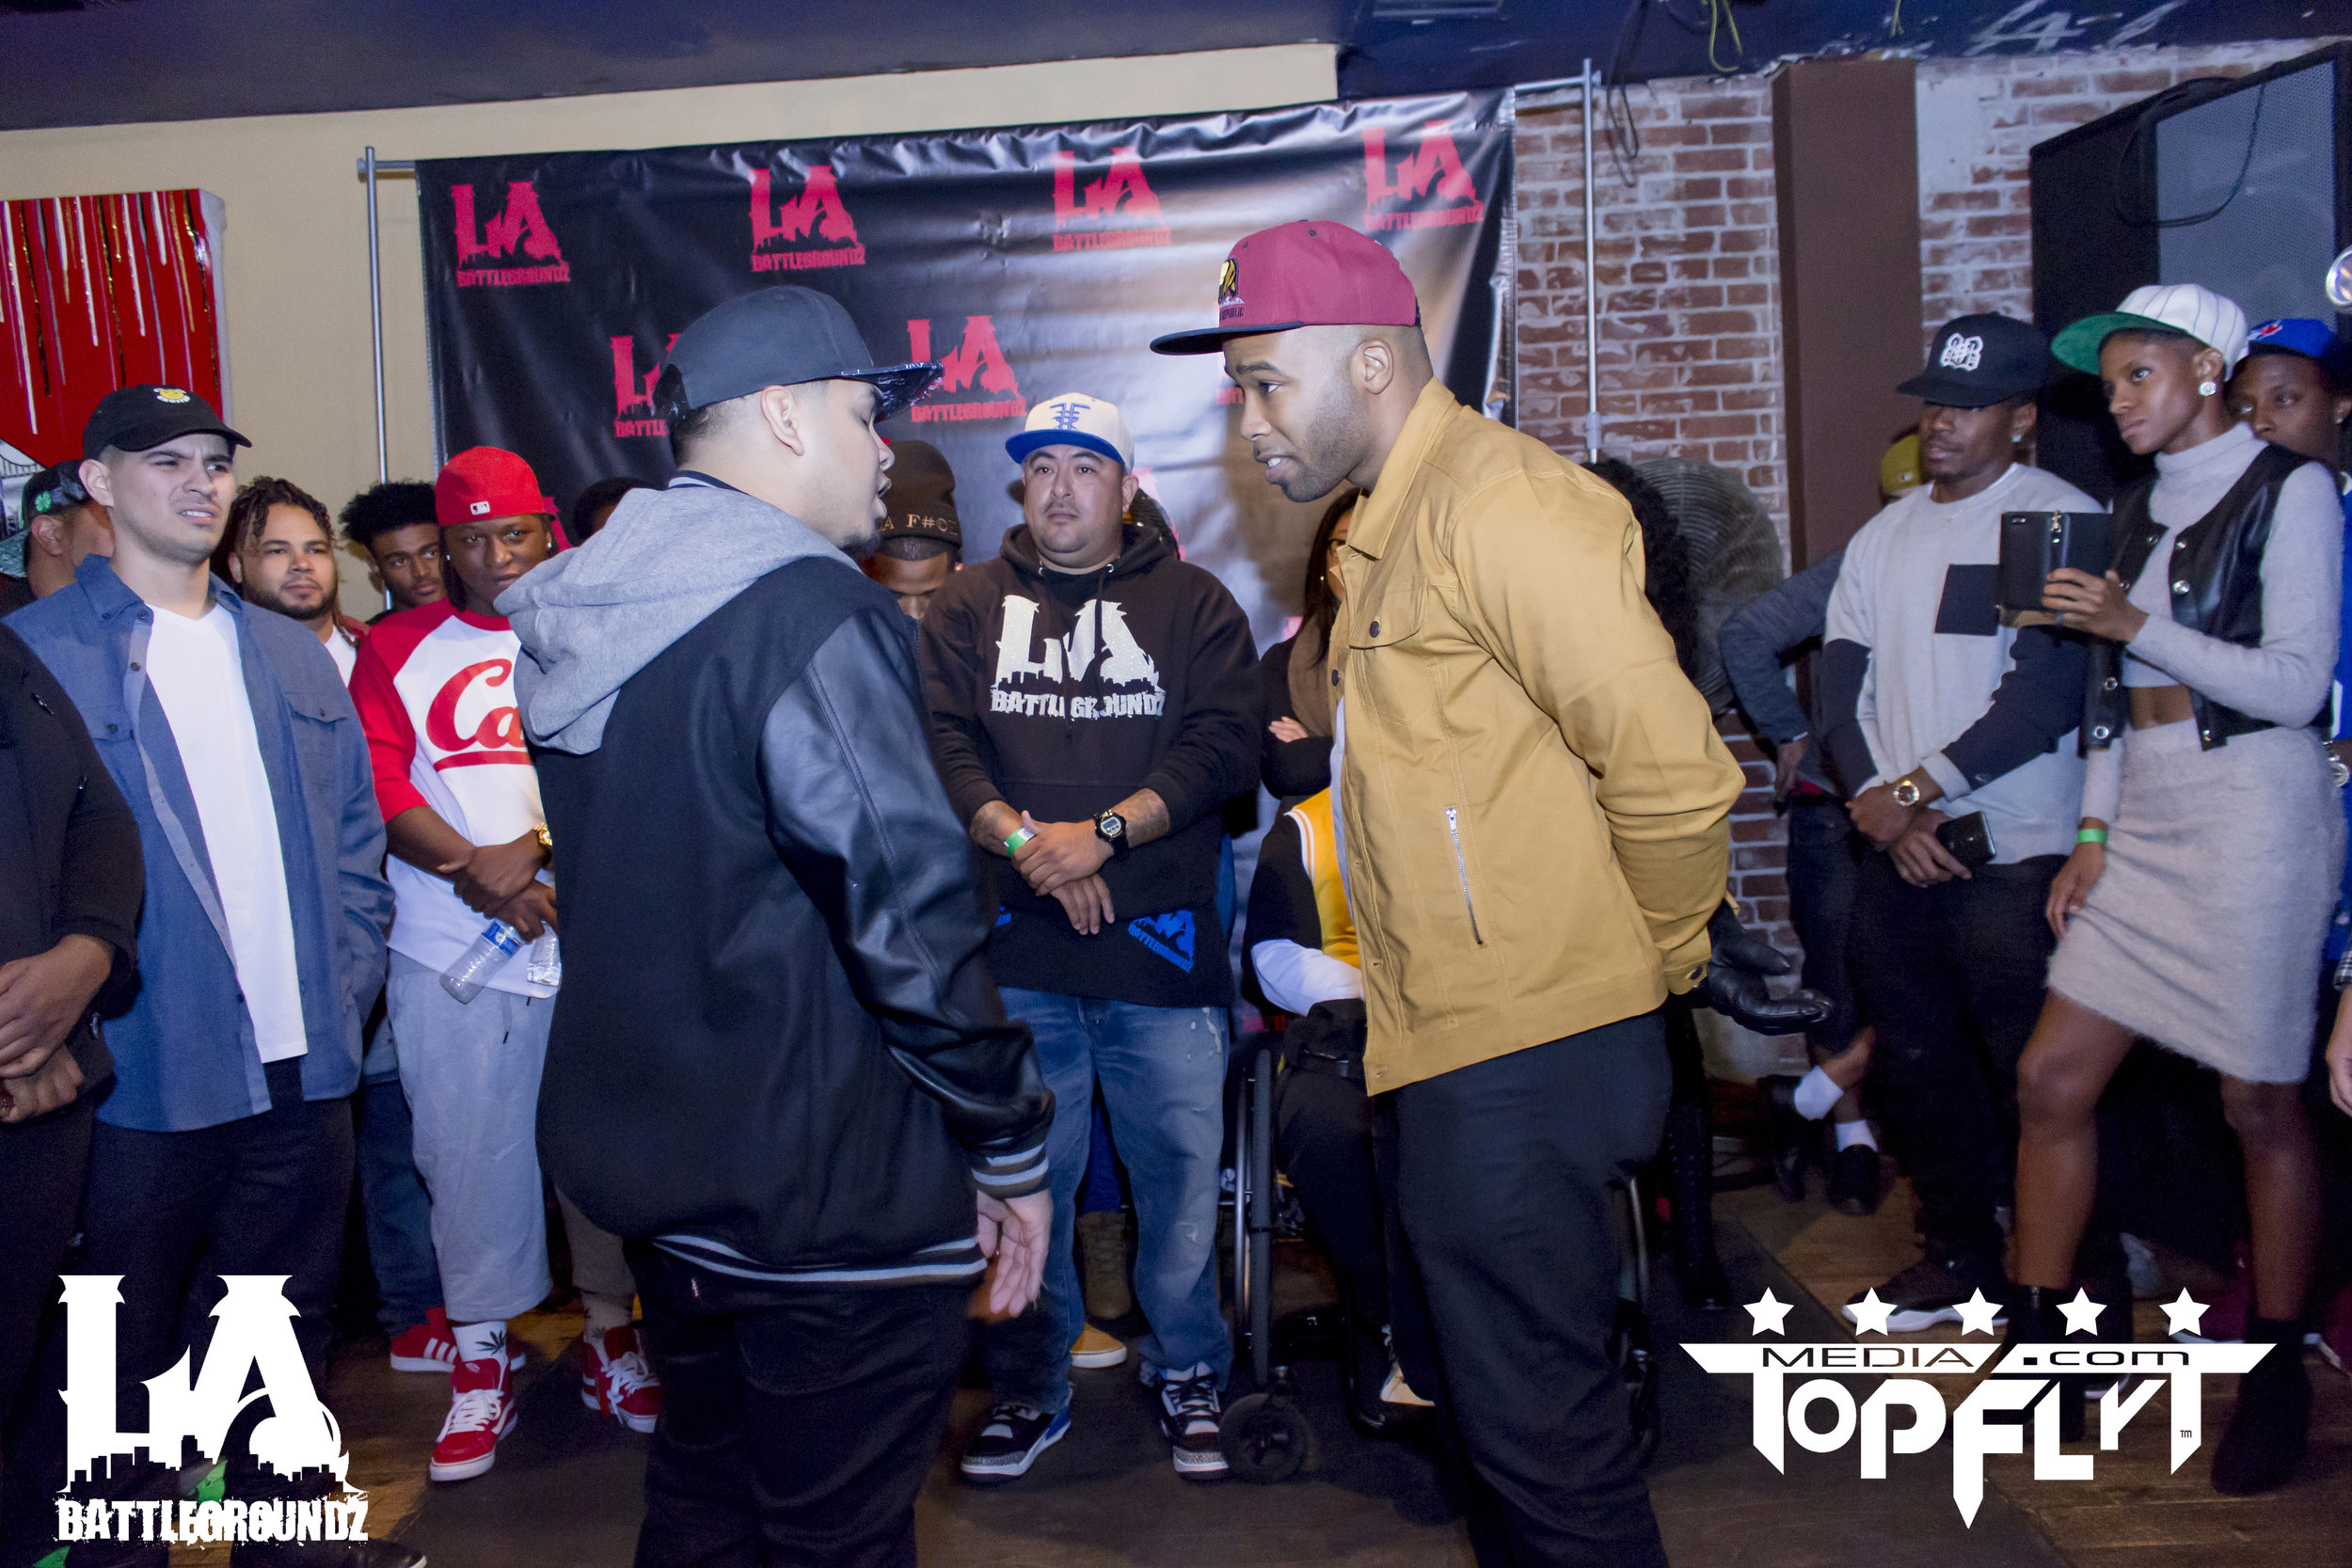 LA Battlegroundz - Decembarfest - The Christening_38.jpg